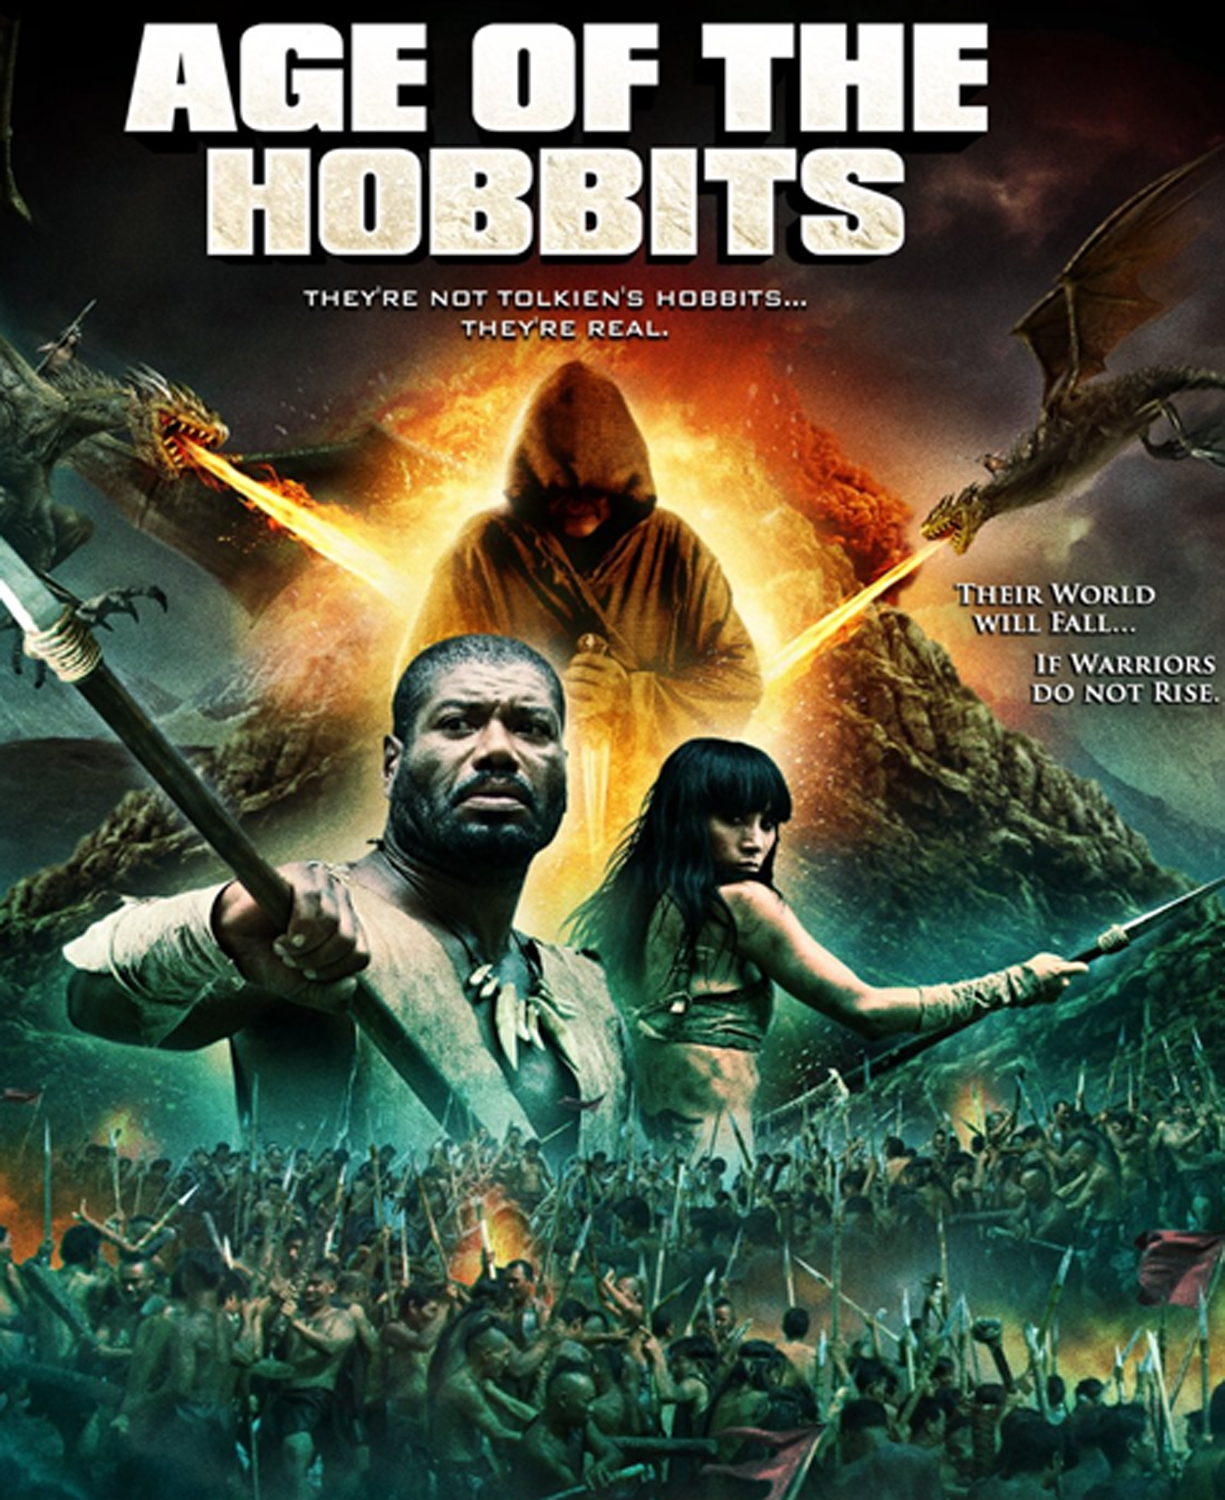 Age of the Hobbits 2012 Hindi Dual Audio 720p BluRay 800MB Download